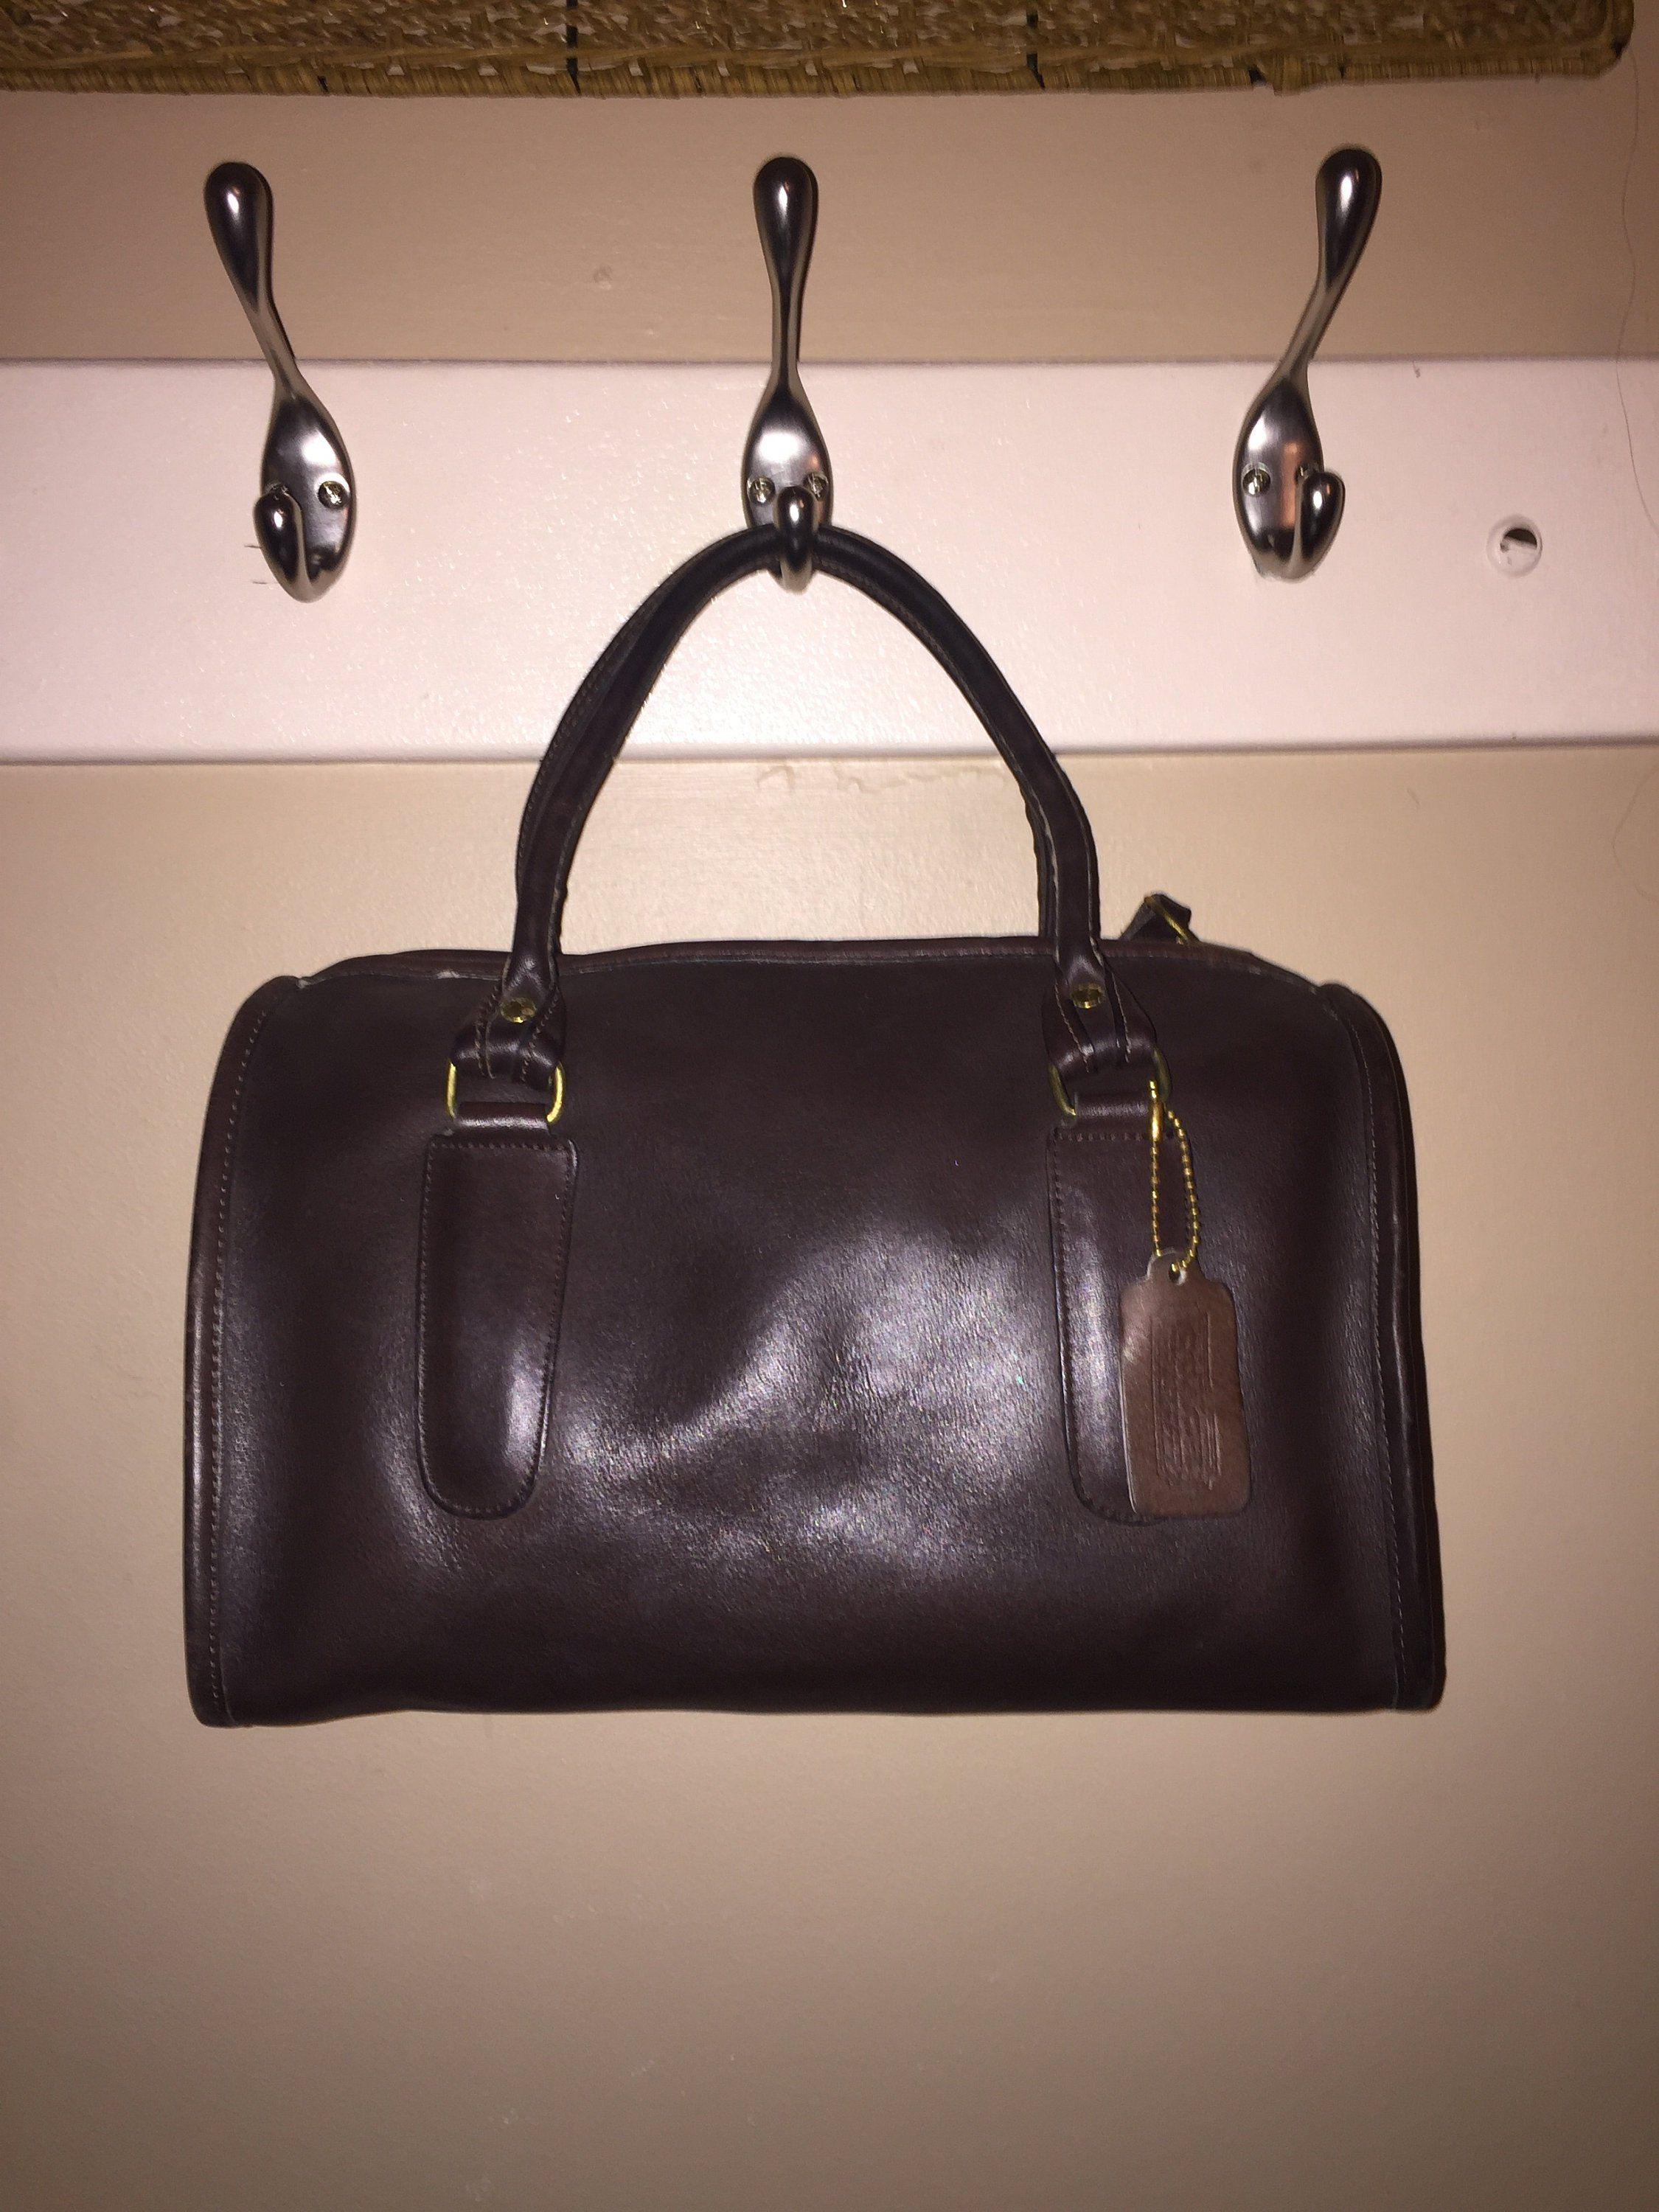 Coach Vintage Brown Doctor Satchel Bag New York City Usa 103 3618 By Coachcrossing On